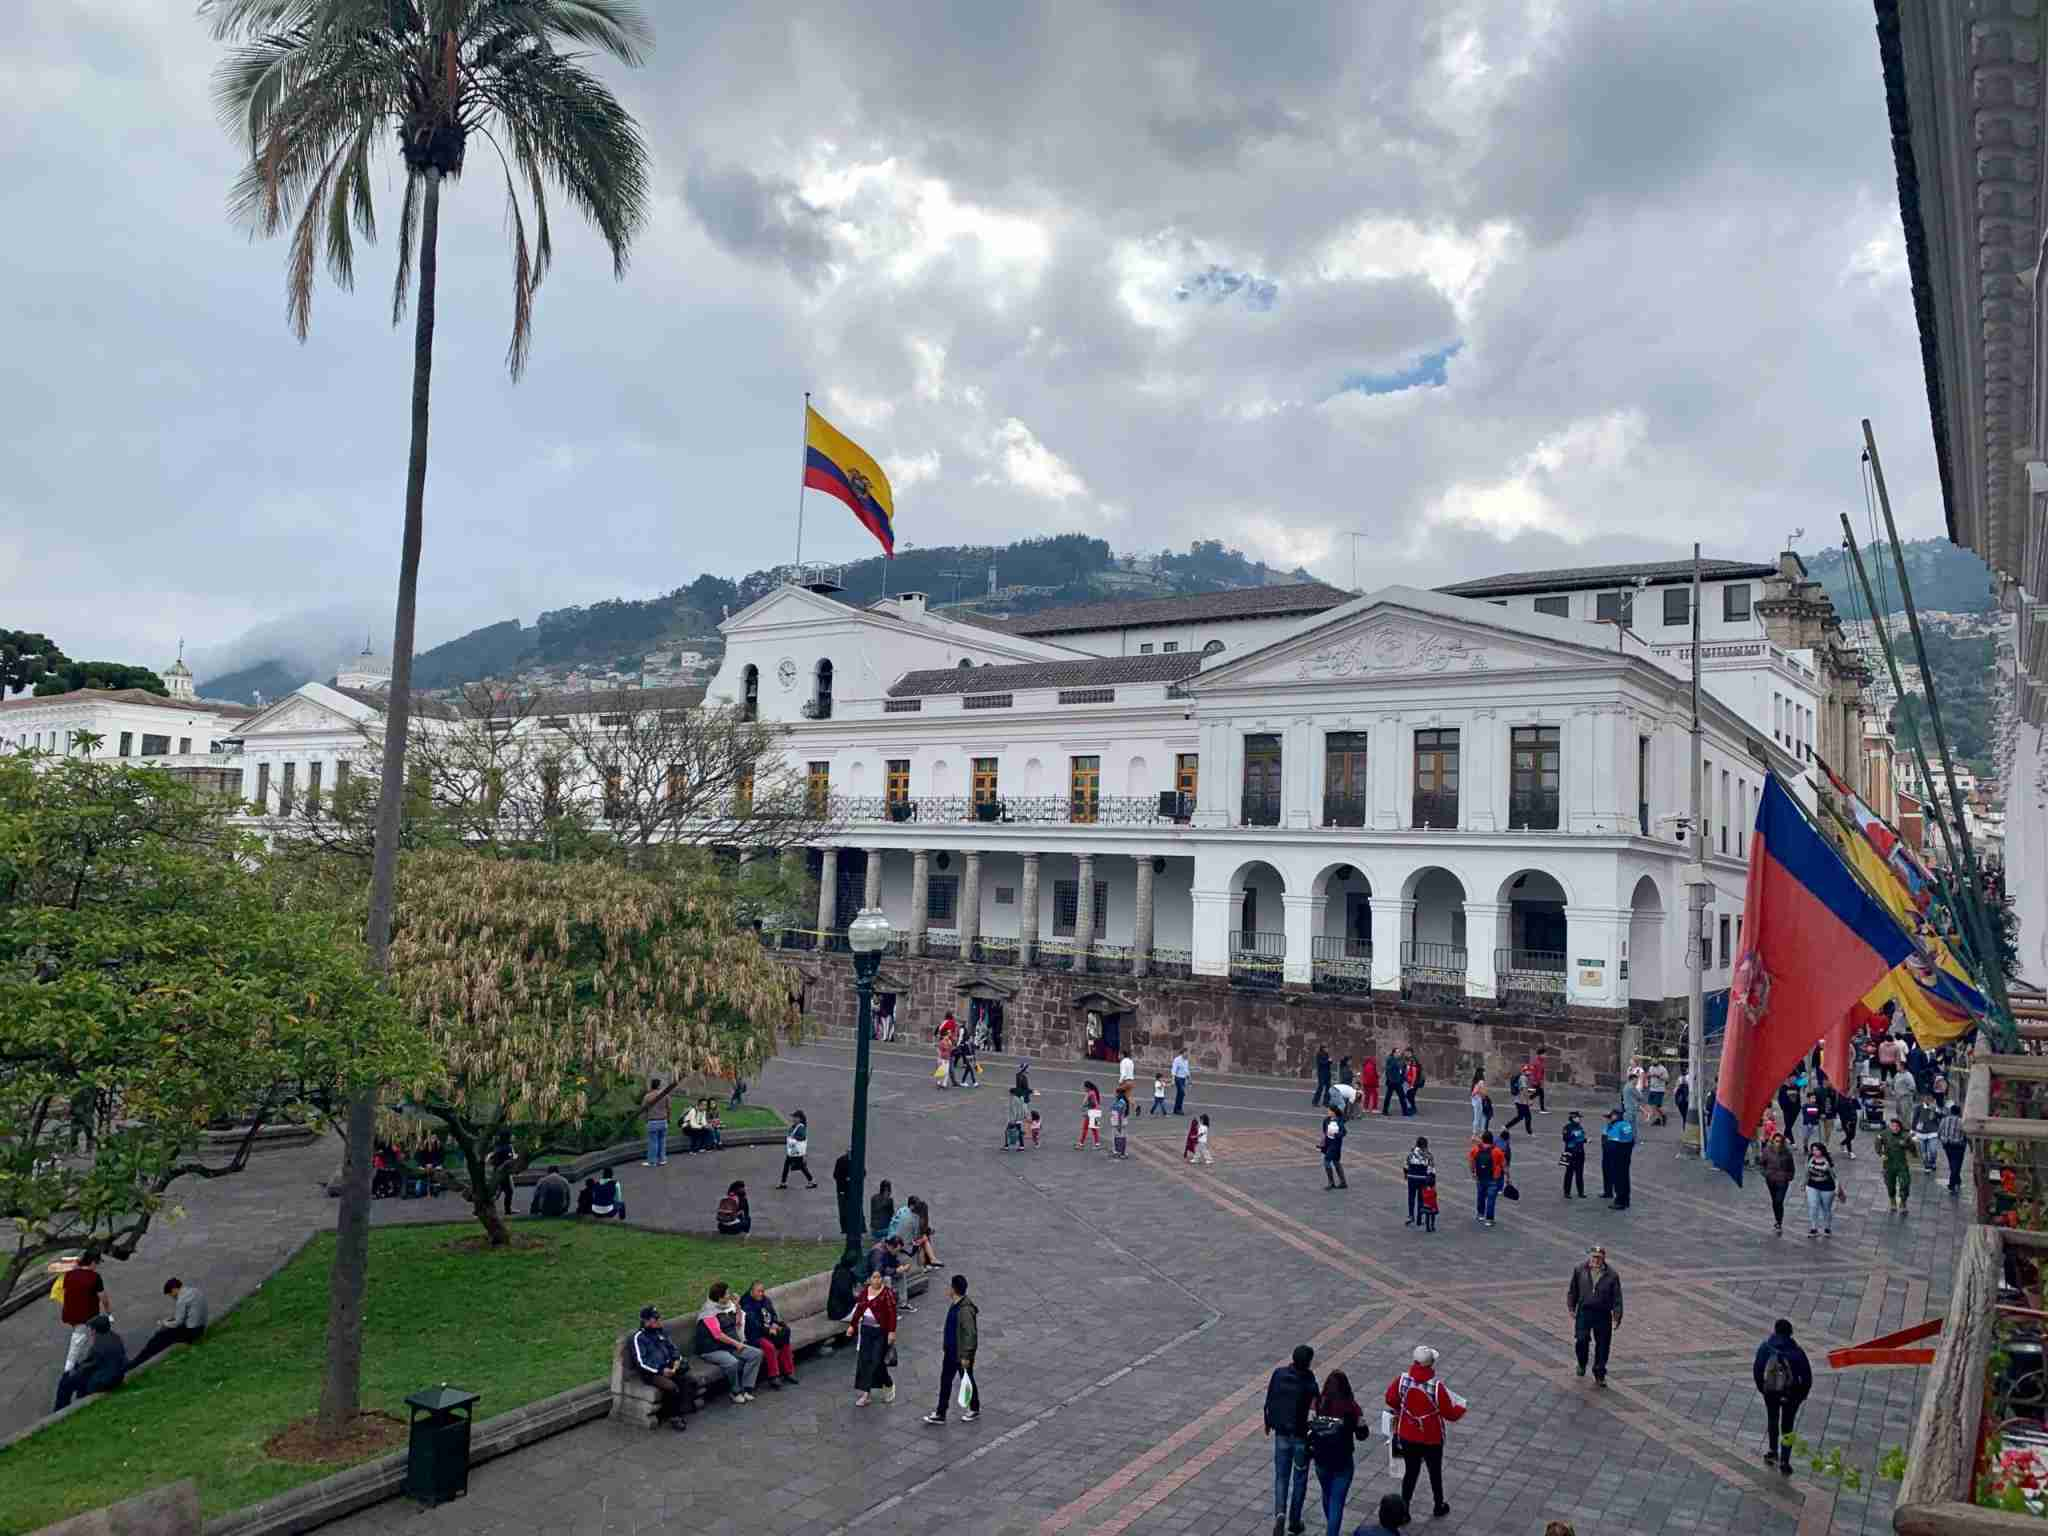 Quito, Ecuador October 2019. (Photo by Clint Henderson/The Points Guy)